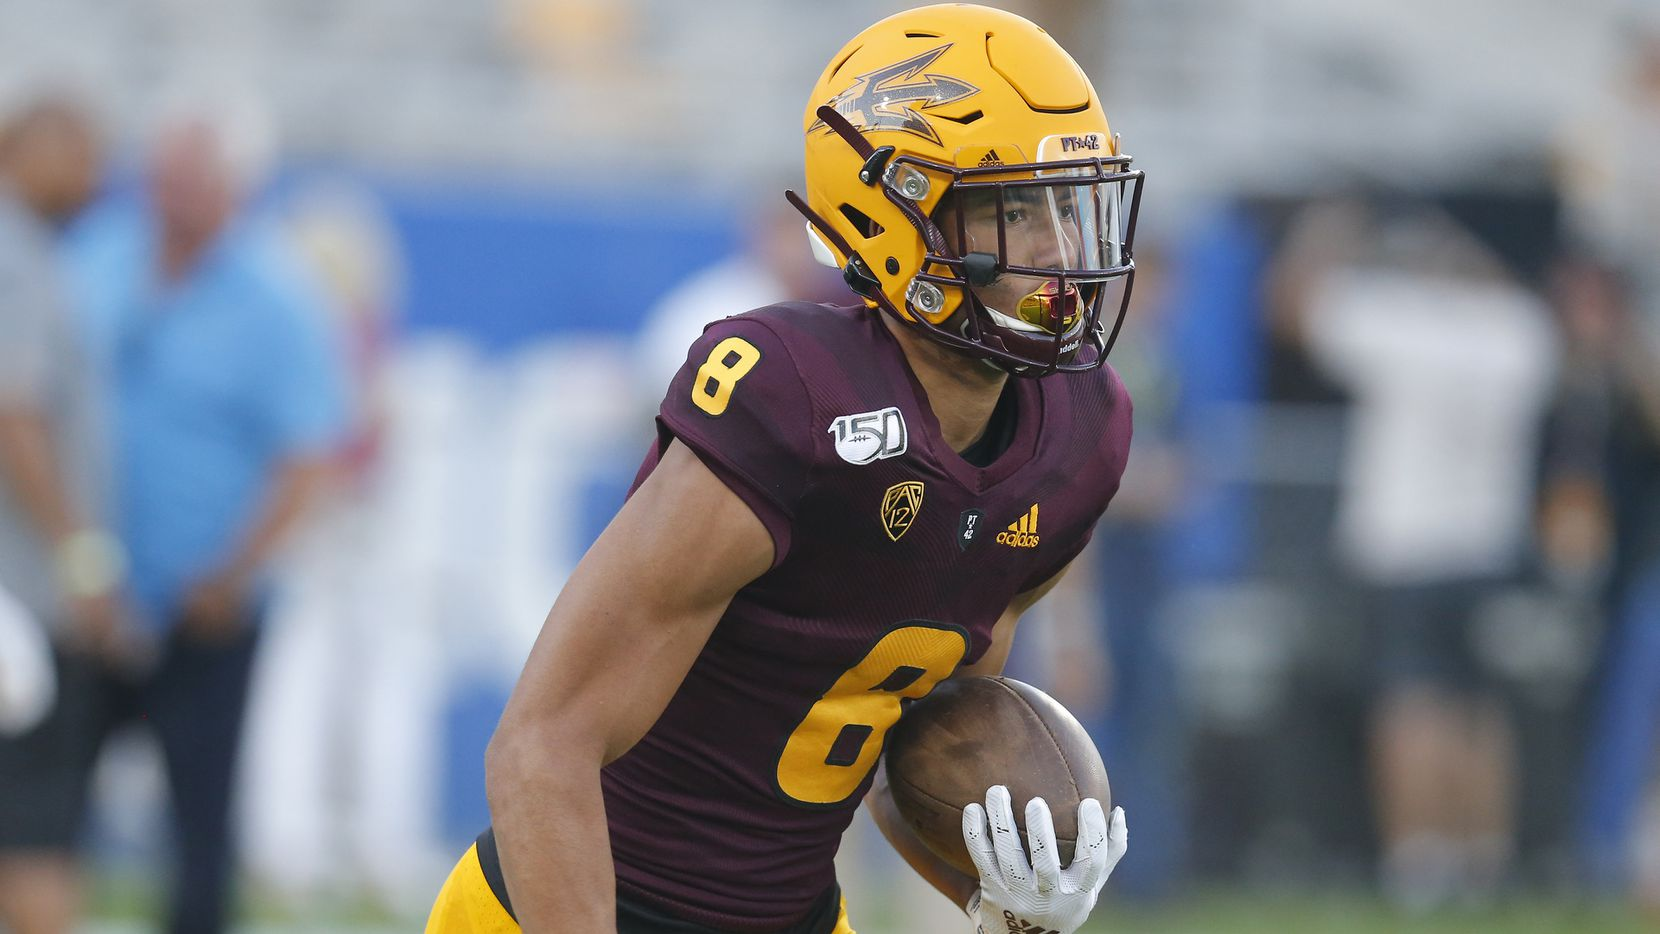 Arizona State Sun Devils wide receiver Jordan Kerley (8) during an NCAA football game against the Kent State Golden Flashes on Thursday, Aug. 29, 2019 in Tempe, Ariz.